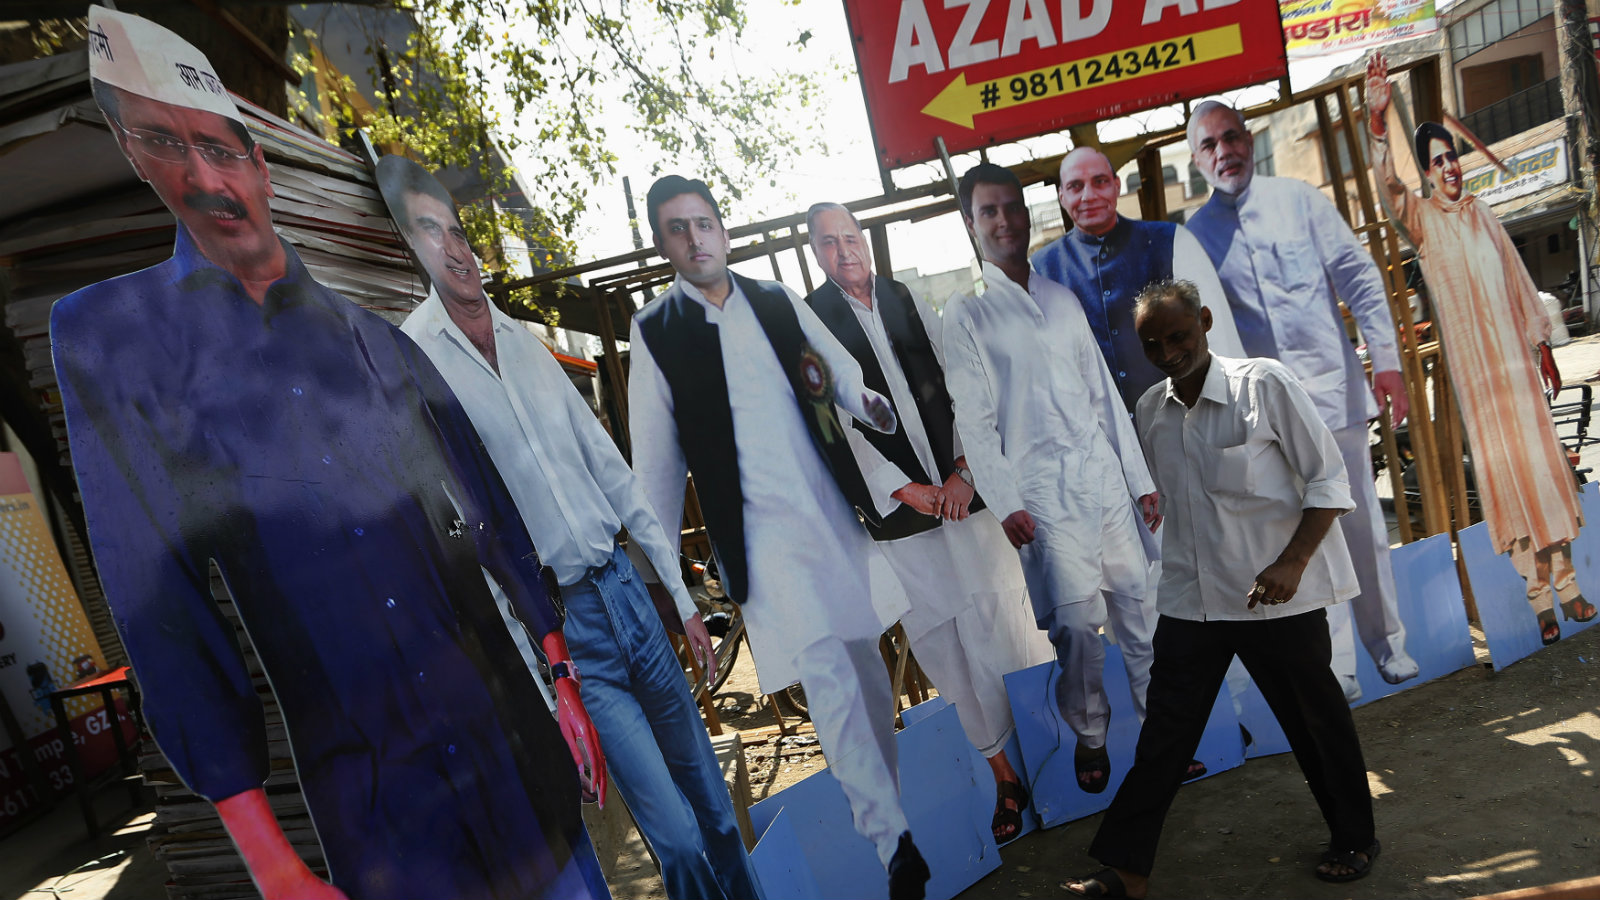 Cut-outs of major Indian political leaders on display in Ghaziabad, on the outskirts of New Delhi, in March 2014.